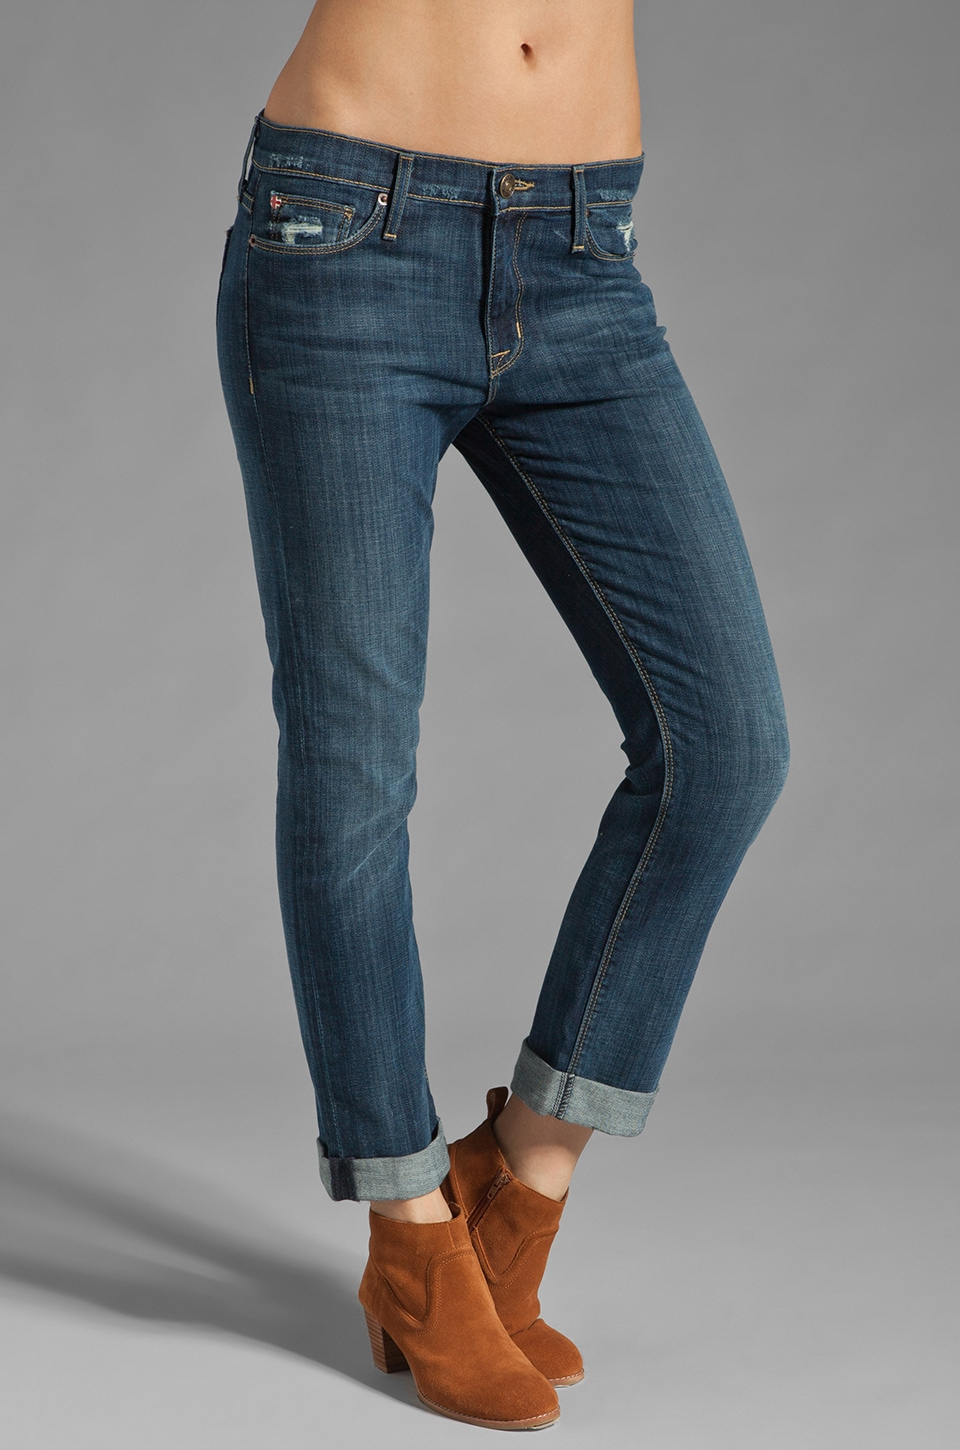 Hudson Jeans Tilda Cuffed Straight Leg in Whitcomb